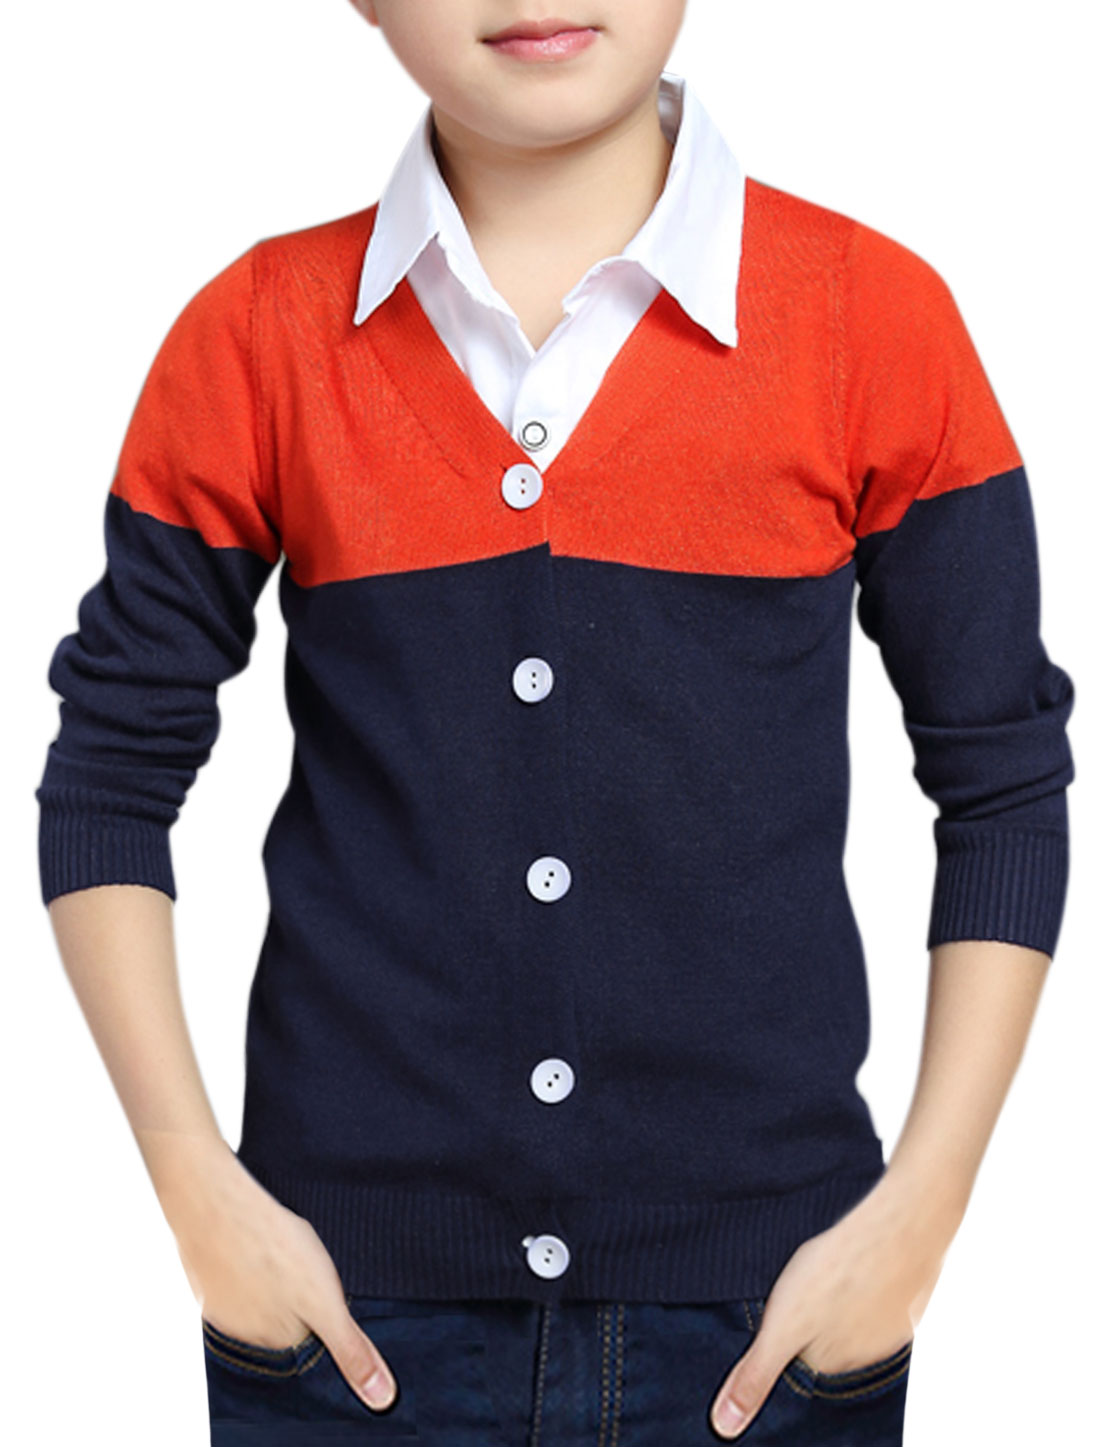 Boys Color Block Slim Fit Knit Cardigan Red Gray 12